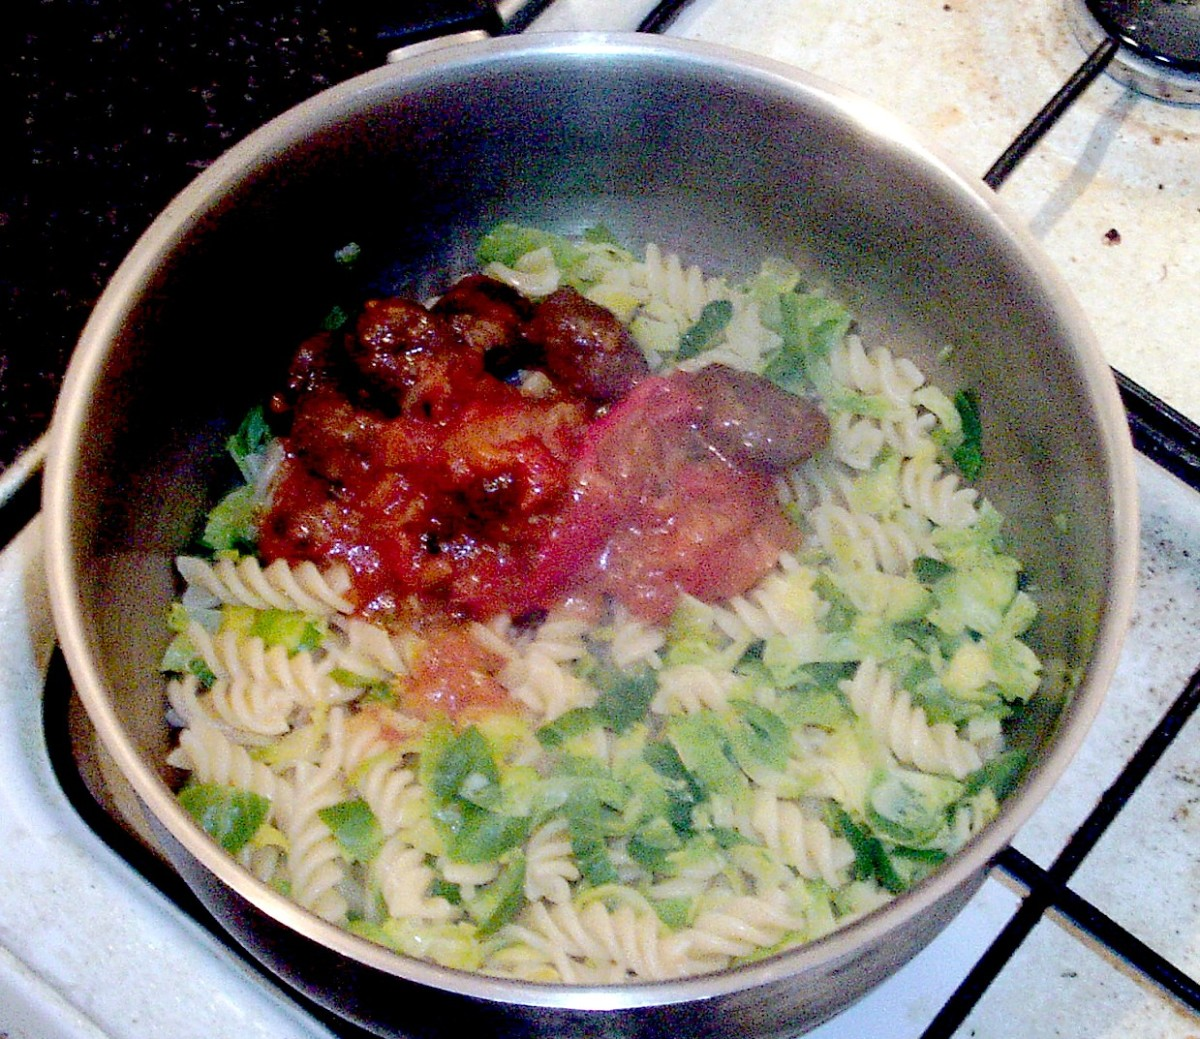 Meatballs in salsa are added to pasta and sprouts